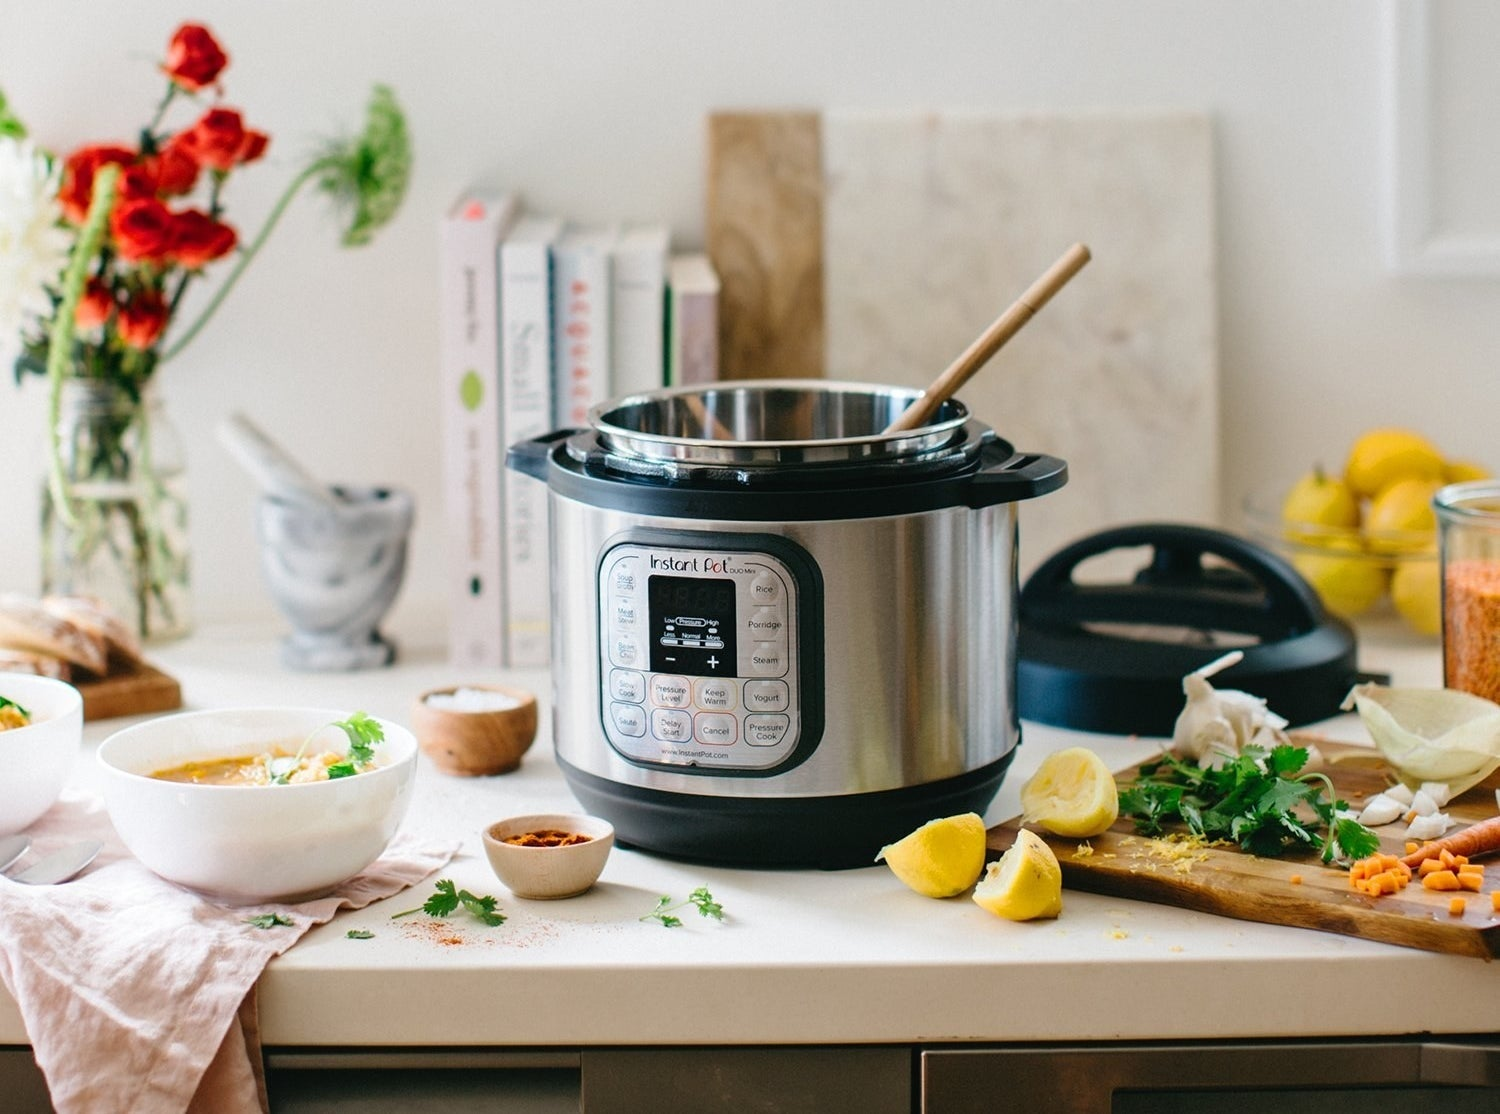 """[bad '90s comedian voice]: """"So what WON'T it do?"""" Well, it *will* serve as a rice cooker, pressure cooker, slow cooker, steamer, sauté, yogurt maker and warmer. (Phew.) Unconvinced? Read our full review on the Instant Pot and weep for the all the time you wasted not owning one.Promising review: """"There are so many people who say they can't cook, but I swear I'm on a whole new level of not being able to cook. This little appliance helps expand our menu and I have learned to do so much with it. I will sum up in a nutshell, I love how easy it is and how everything I throw in it comes out done. No stirring and not many messy dishes. I still don't love it for meats, (which I don't eat much of anyway), but I think that's just a matter of needing to experiment more with them. I seriously can't believe how many foods can be cooked in here!"""" —AundreaGet it from Amazon for $69.95+ (two sizes)."""